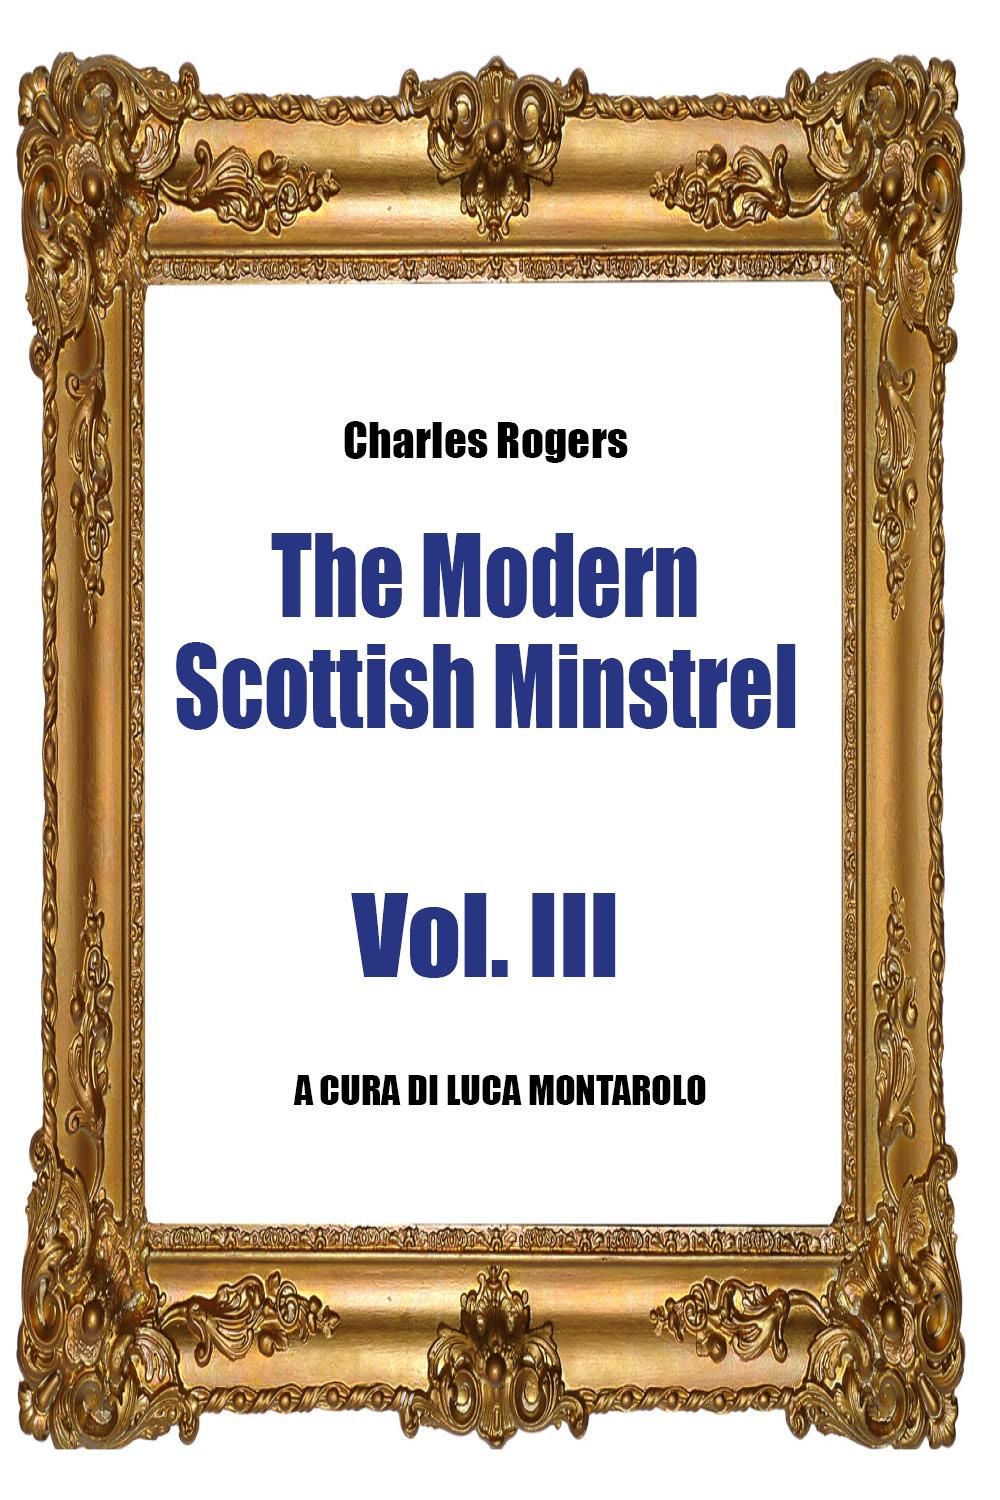 The Modern Scottish Minstrel - Volume III